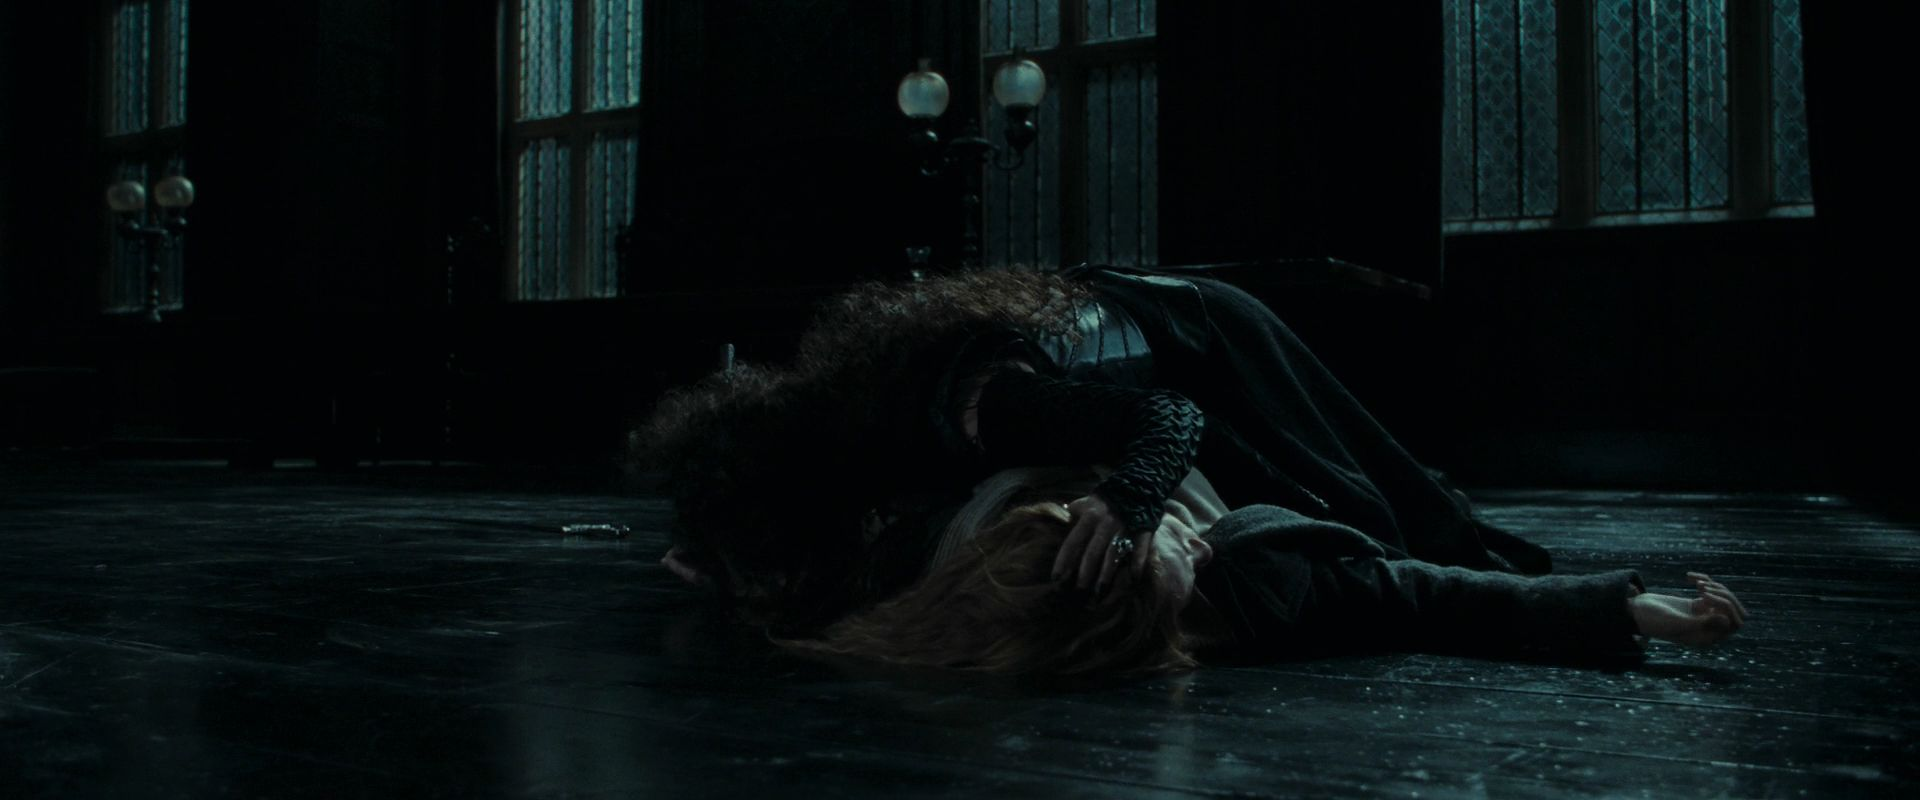 Harry Potter and the Deathly Hallows Part 1 (BluRay)